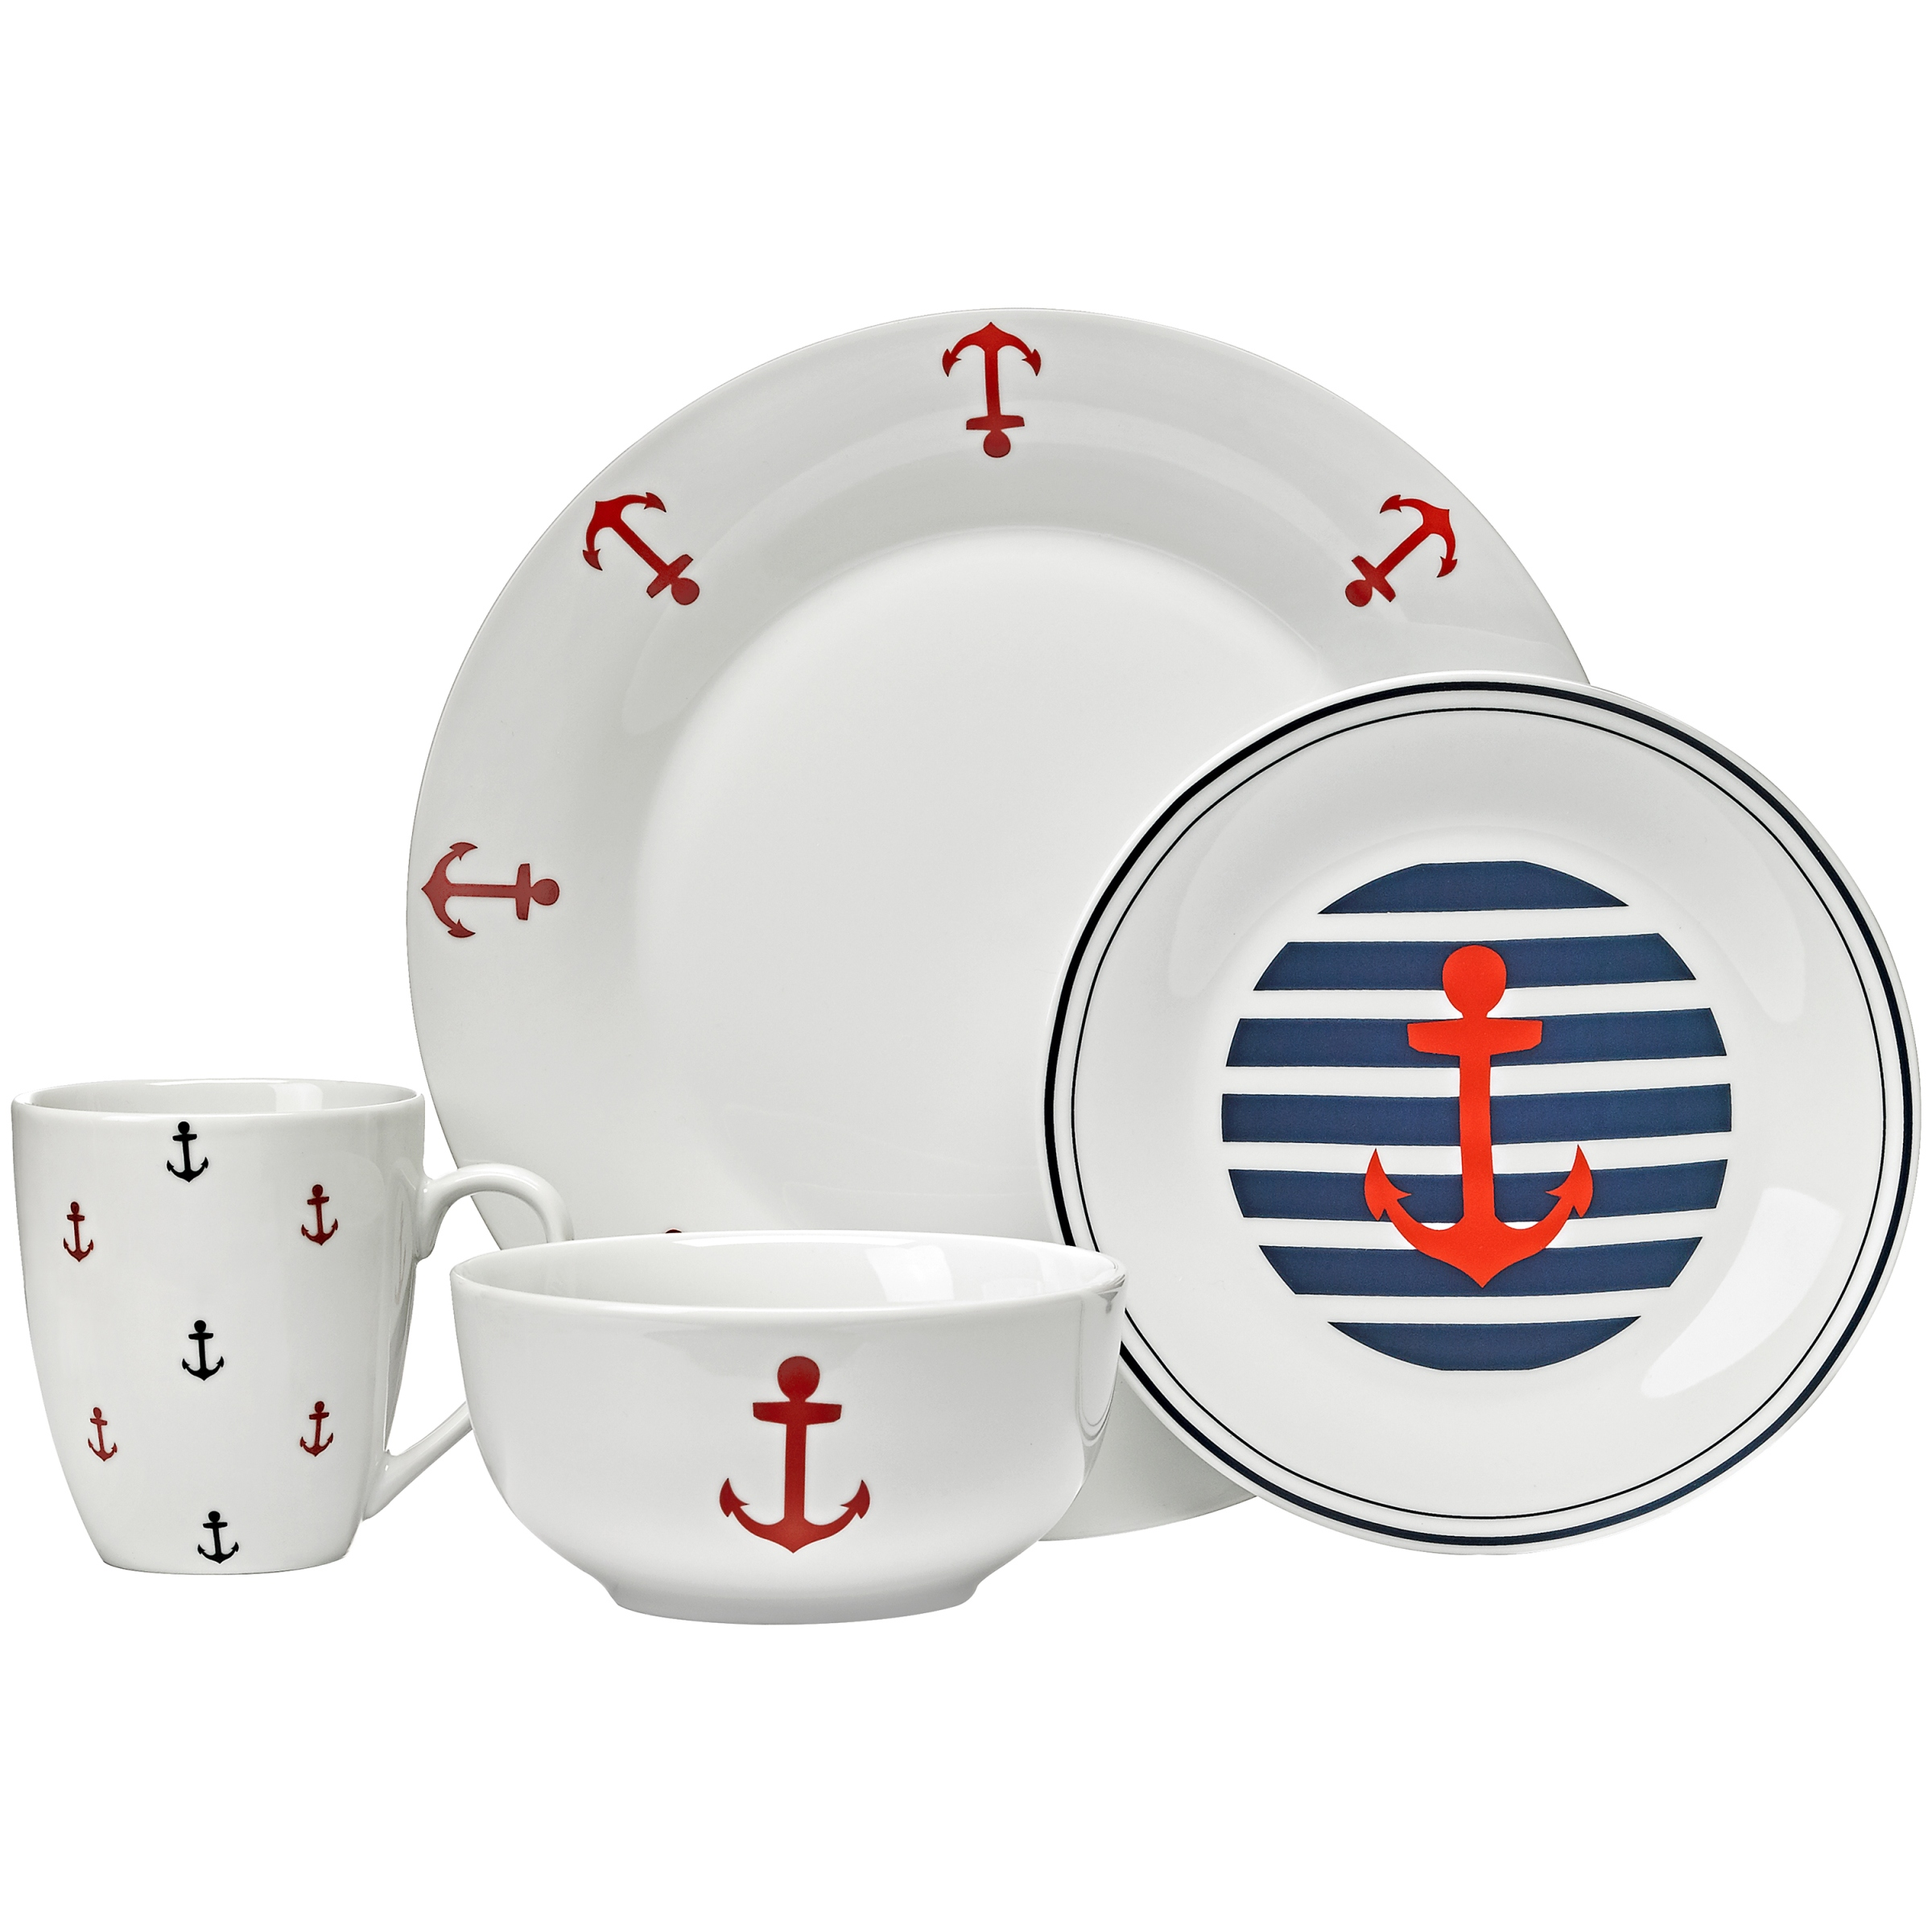 Maritime Collection 16-Piece Dinner Set, Walmart Exclusive